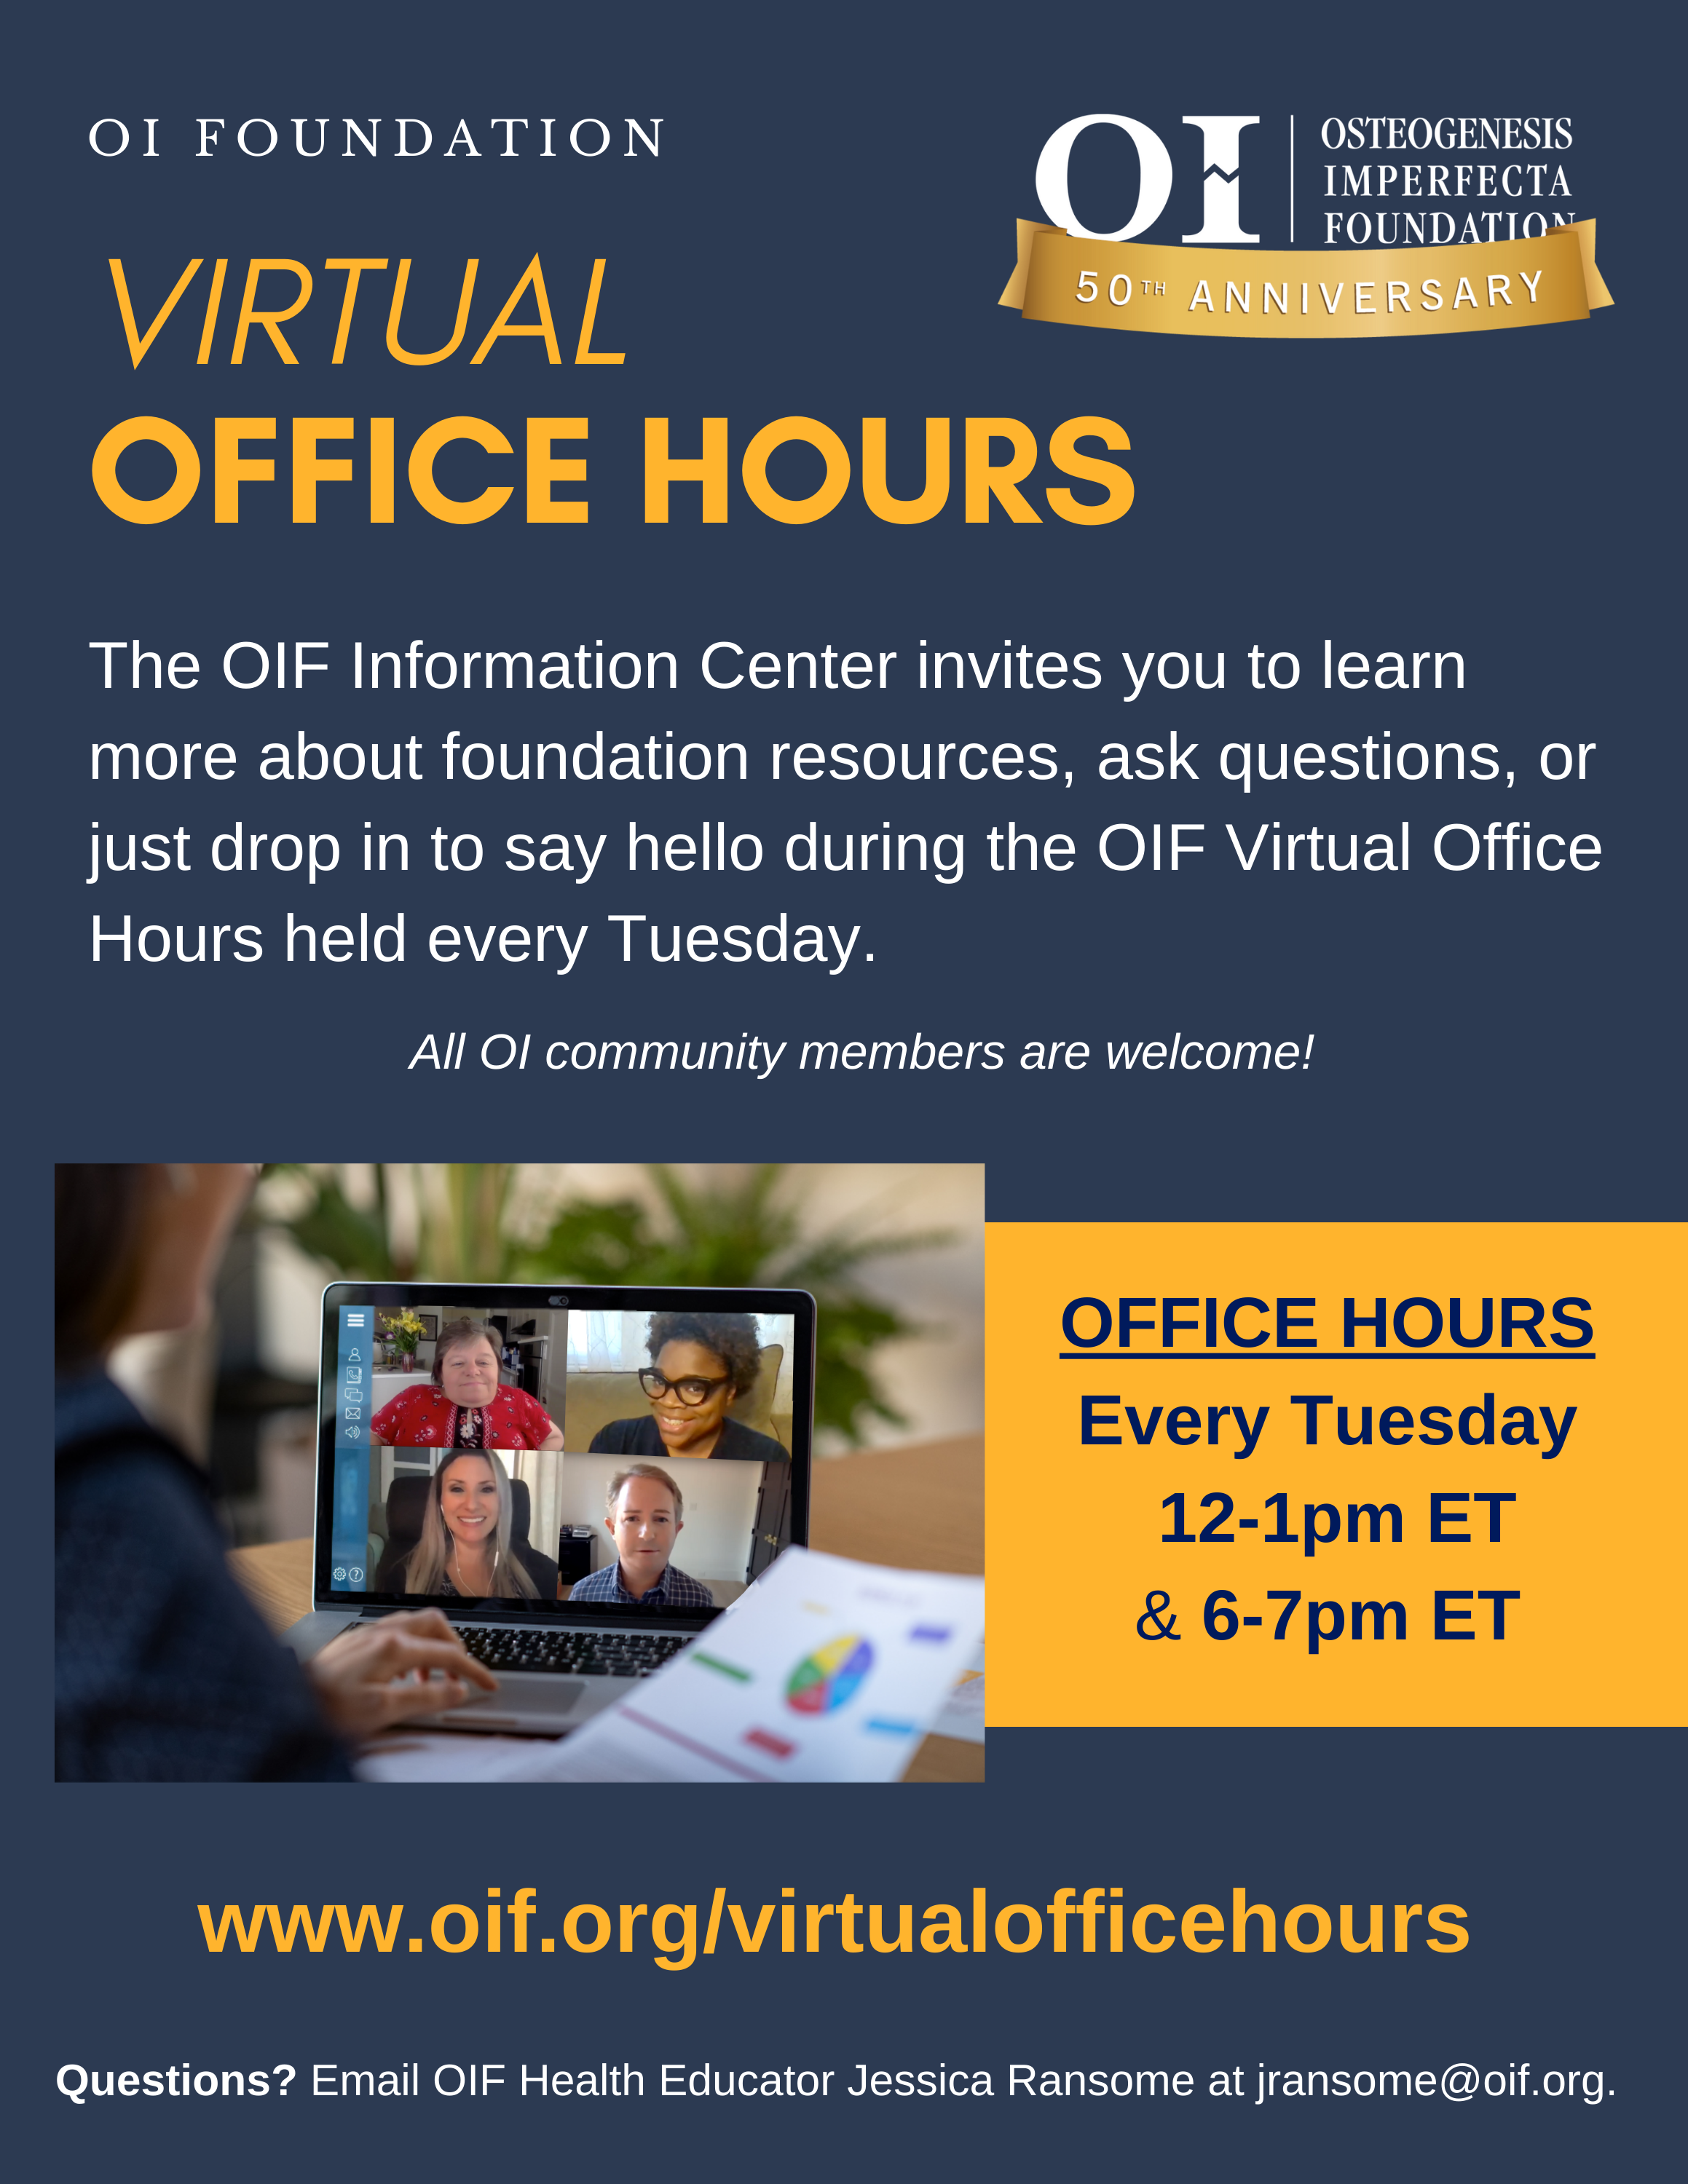 NEW! OIF Virtual Office Hours